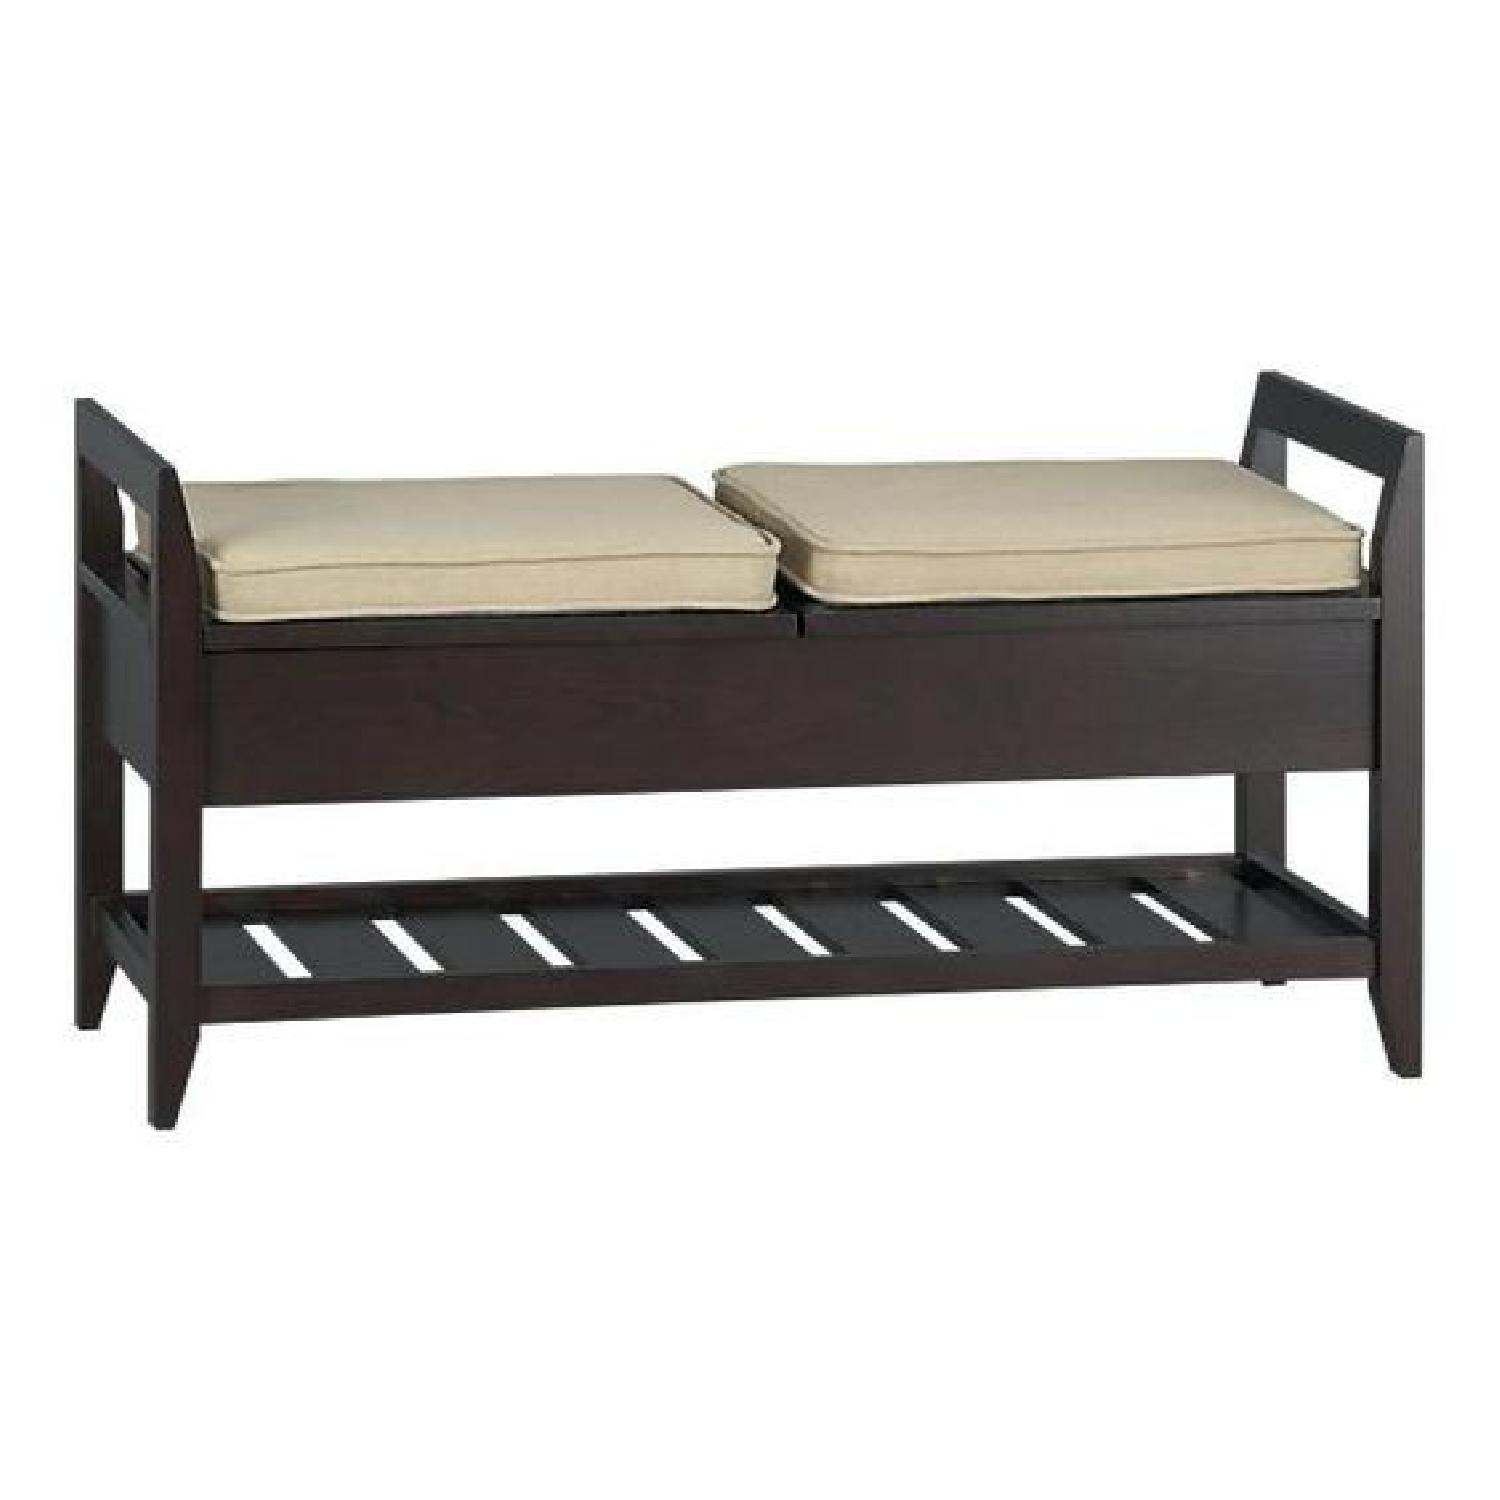 Crate & Barrel Entryway Bench w/ Storage